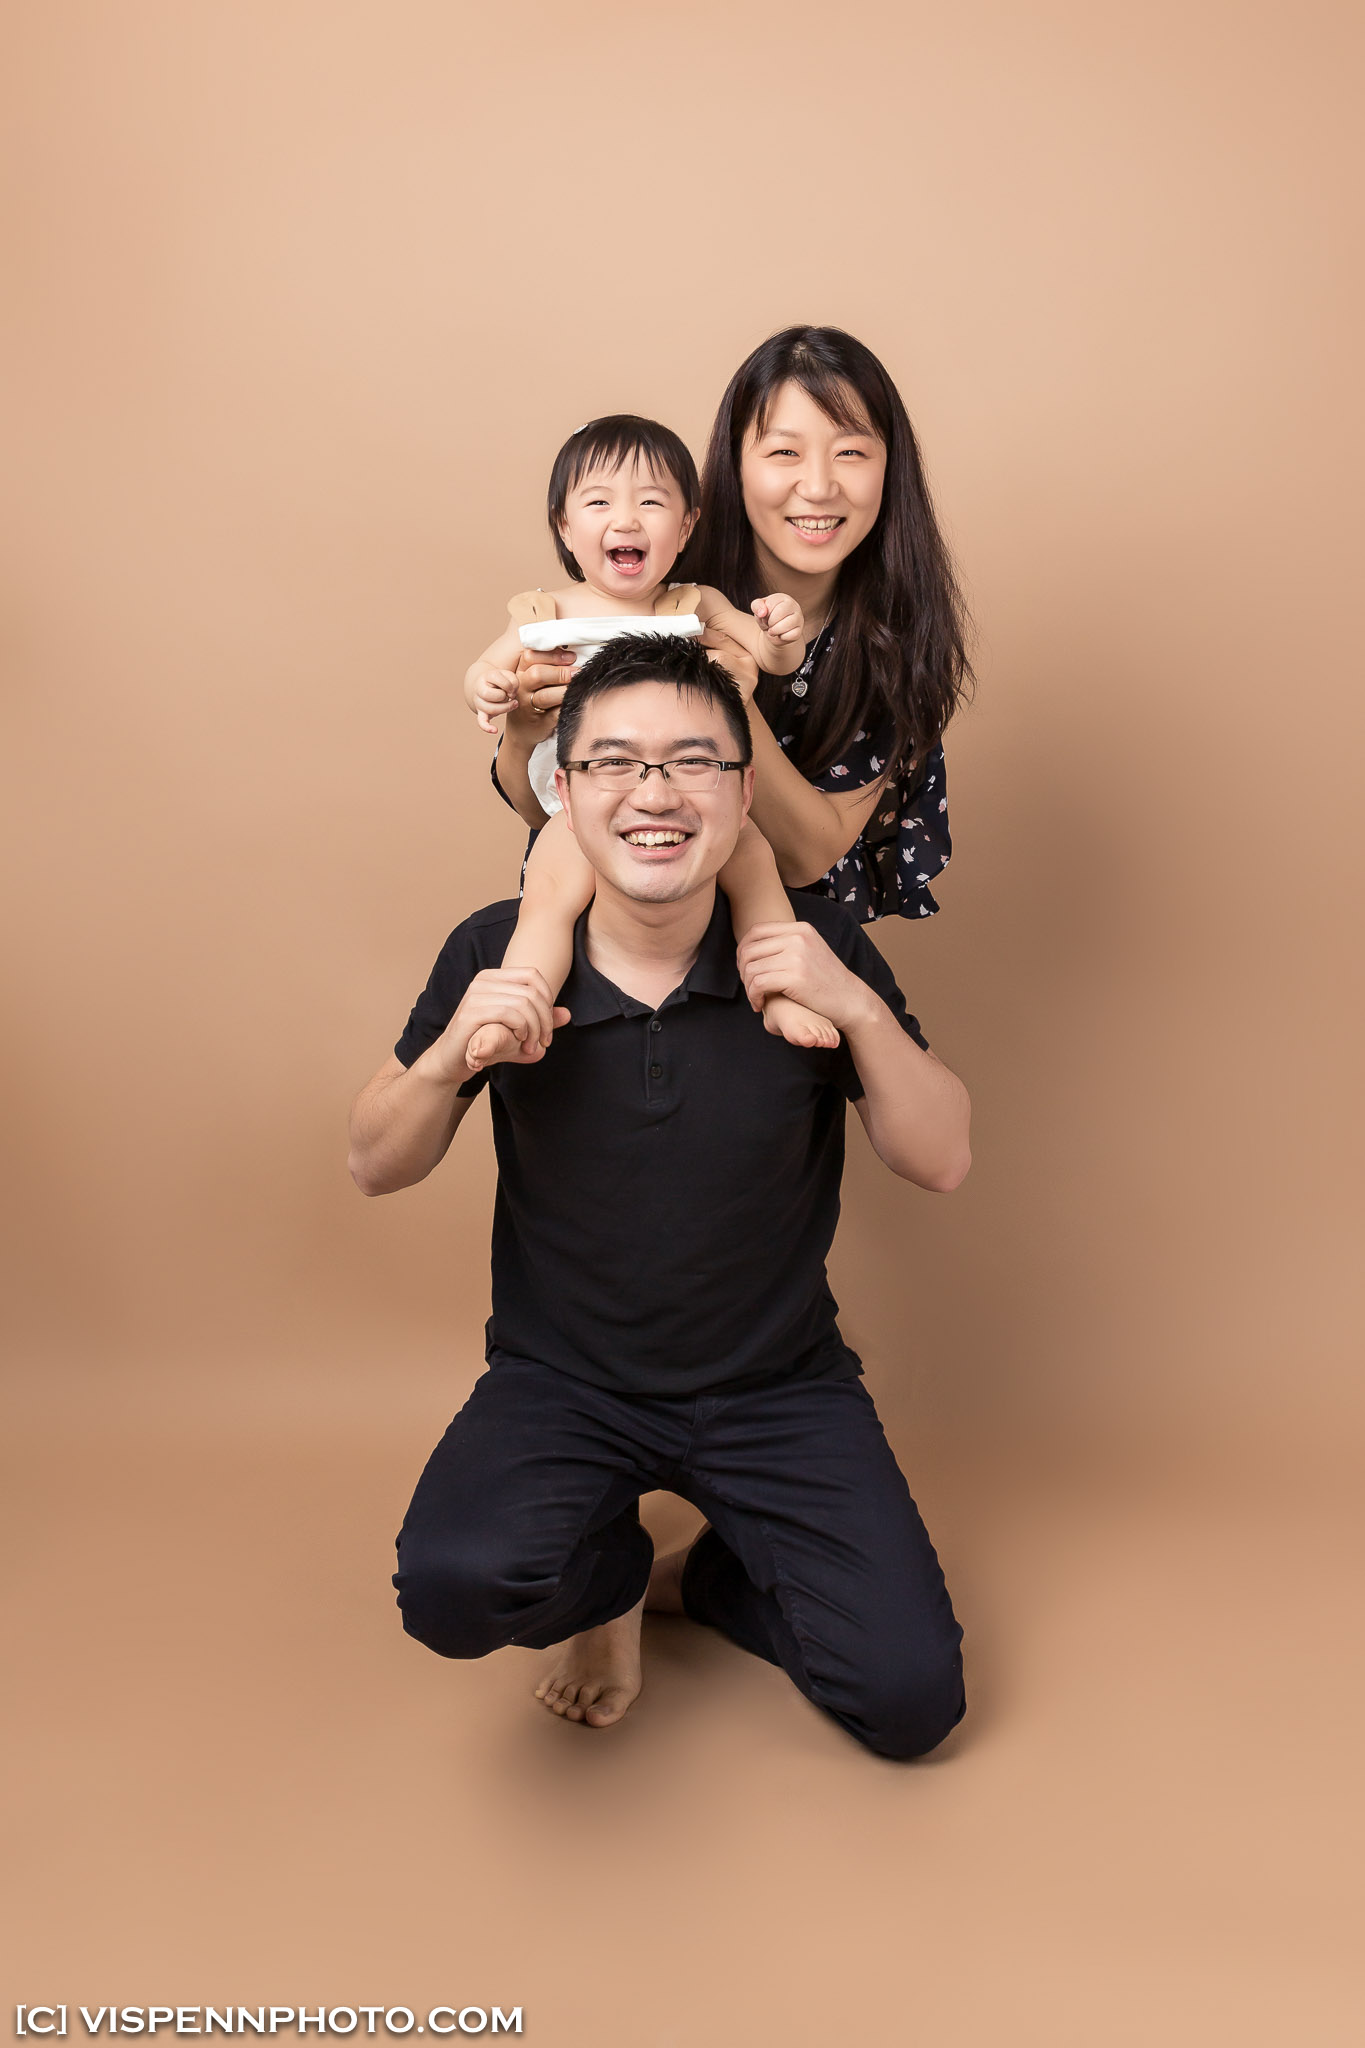 Melbourne Newborn Baby Family Photo BaoBao VISPENN 墨尔本 儿童 宝宝 百天照 满月照 孕妇照 全家福 KIDS NoraHAO 2289 VISPENN